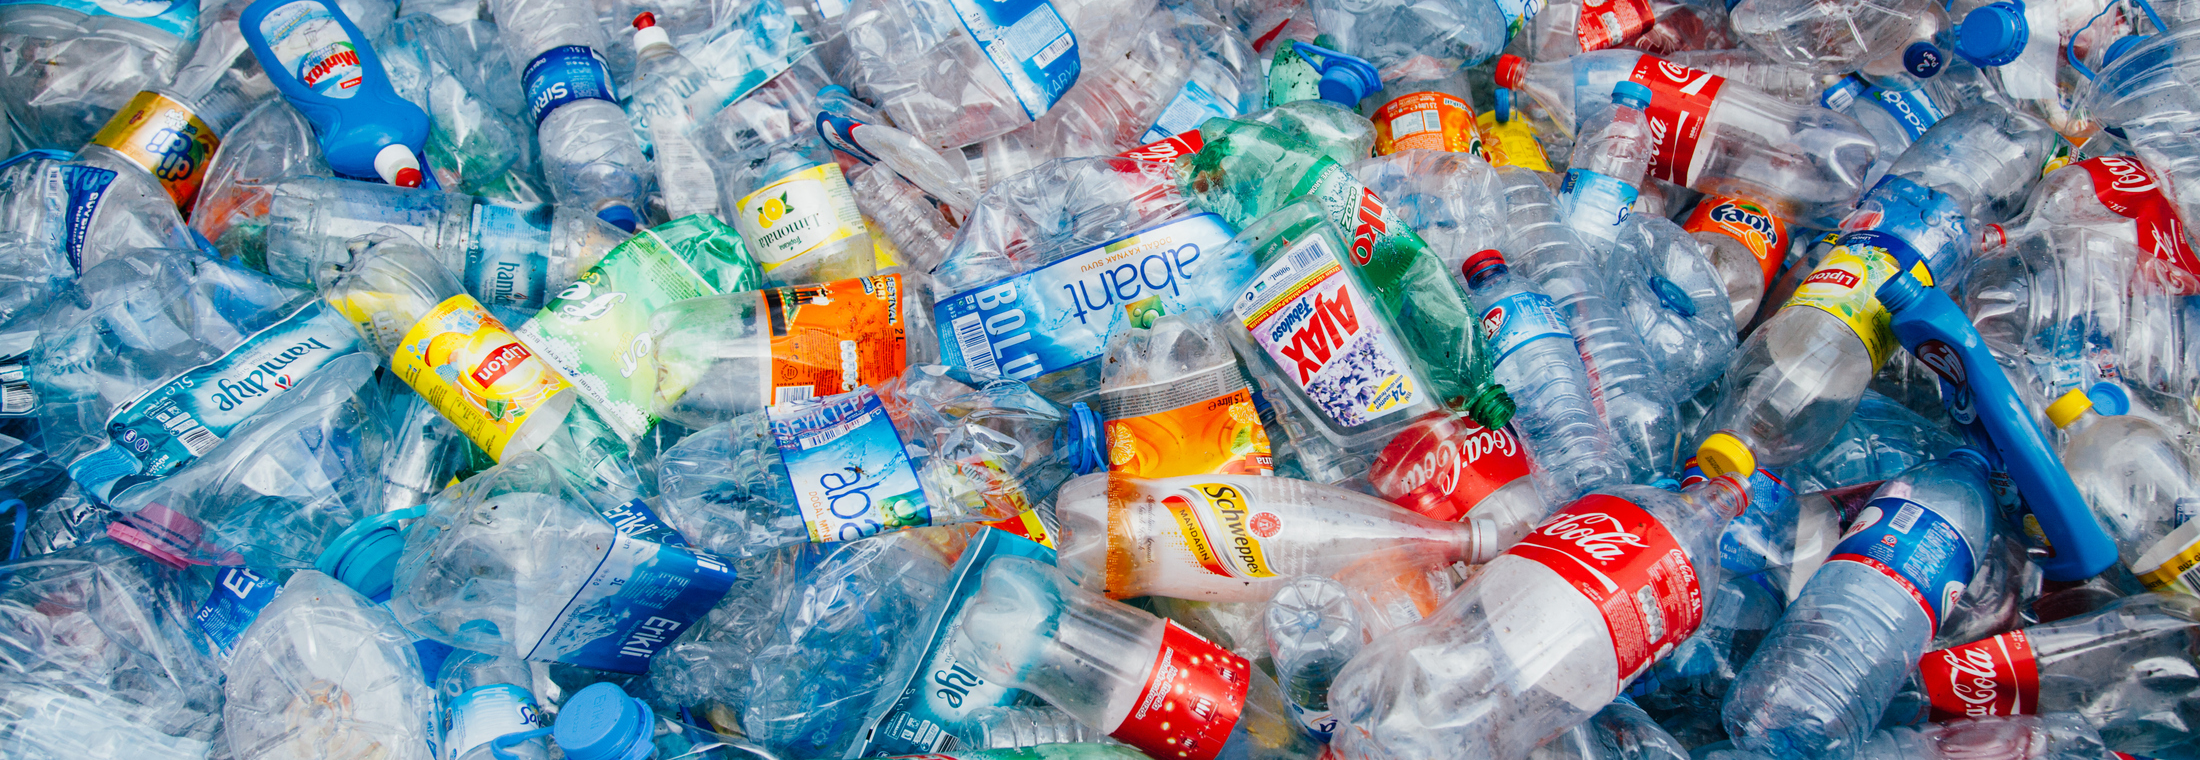 Plastic Data Consumers Are Becoming More Interested In